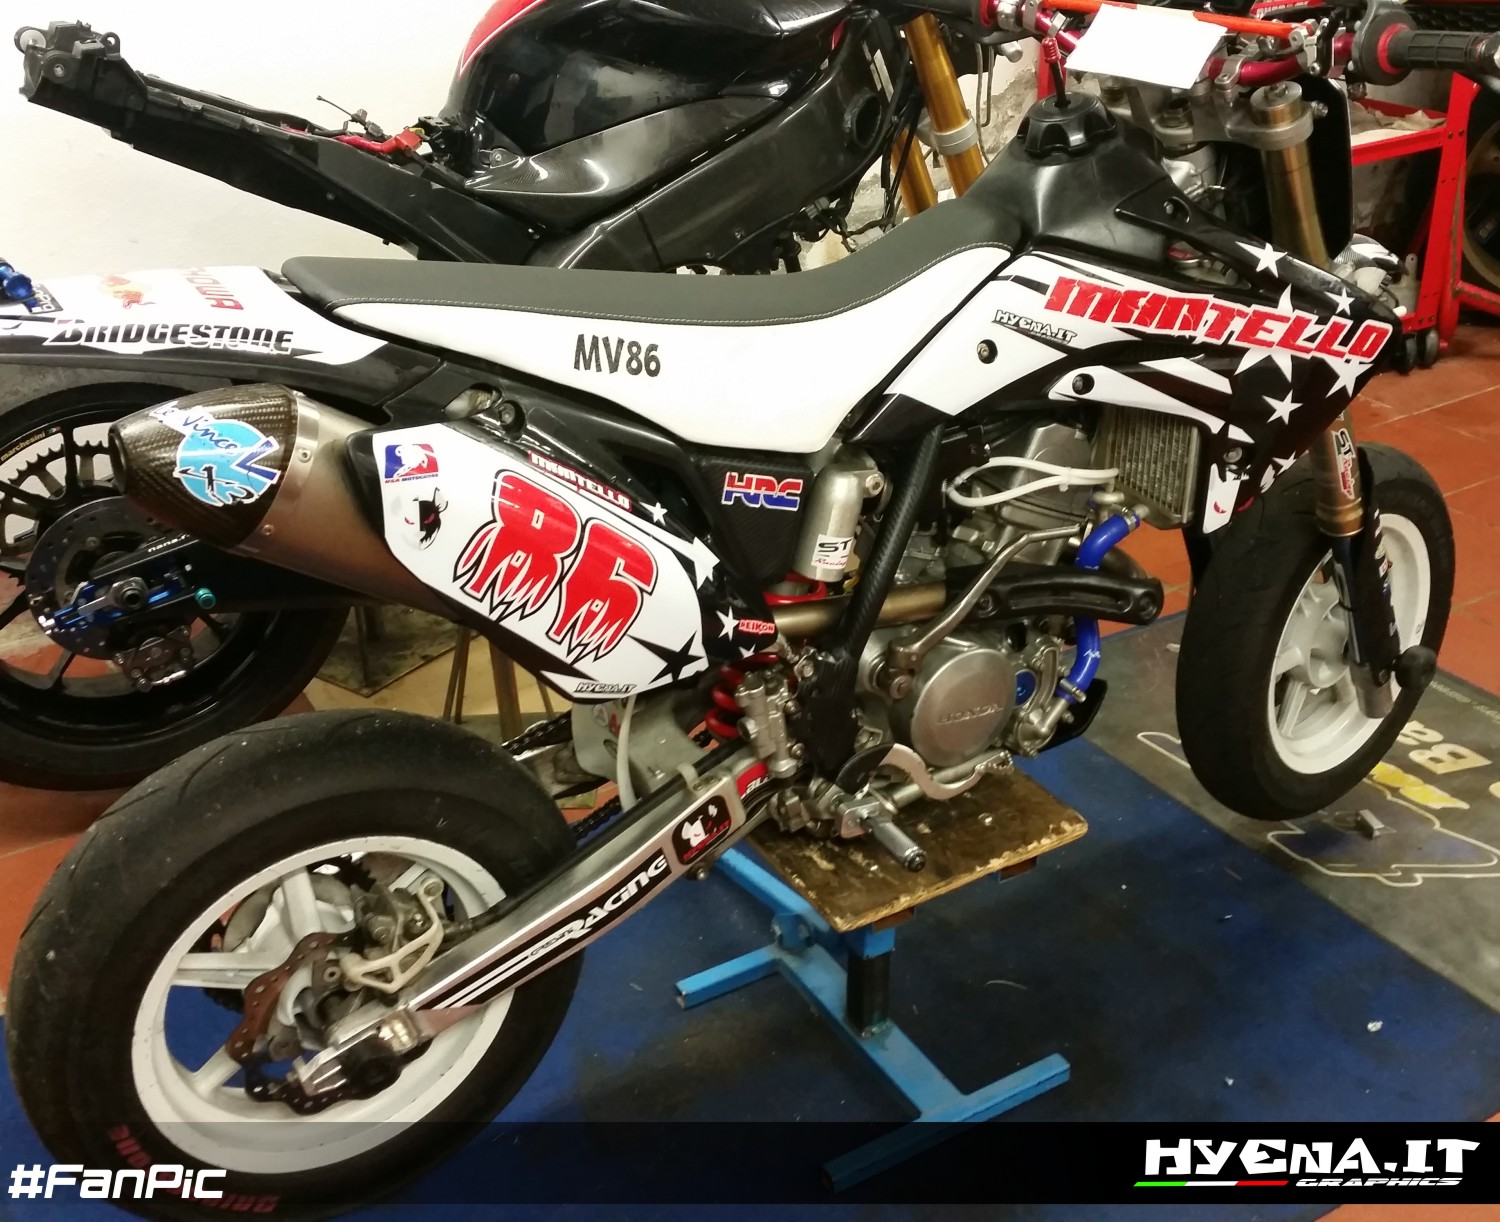 hight resolution of customized graphic kit for honda crf 150 2017 customized delcas kit for honda crf 150 2017 graphic honda crf 150 2017 decals honda crf 150 2017 crf